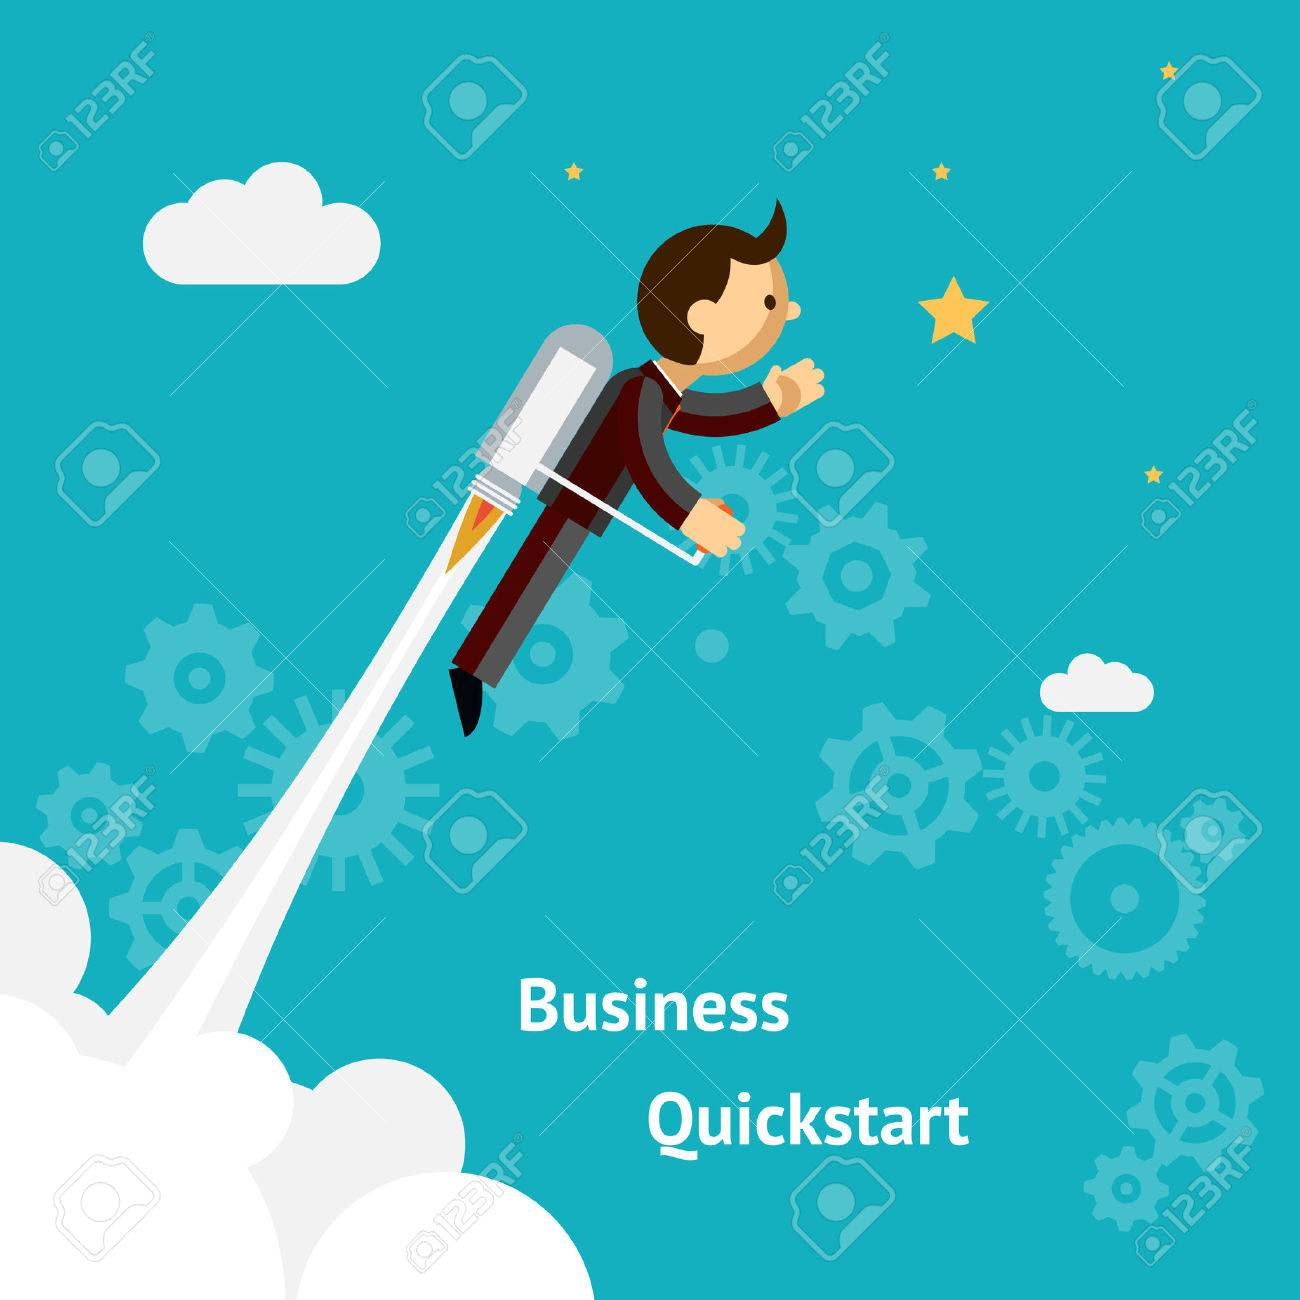 Cartoon Design for Business Growth and Start up - 31062189